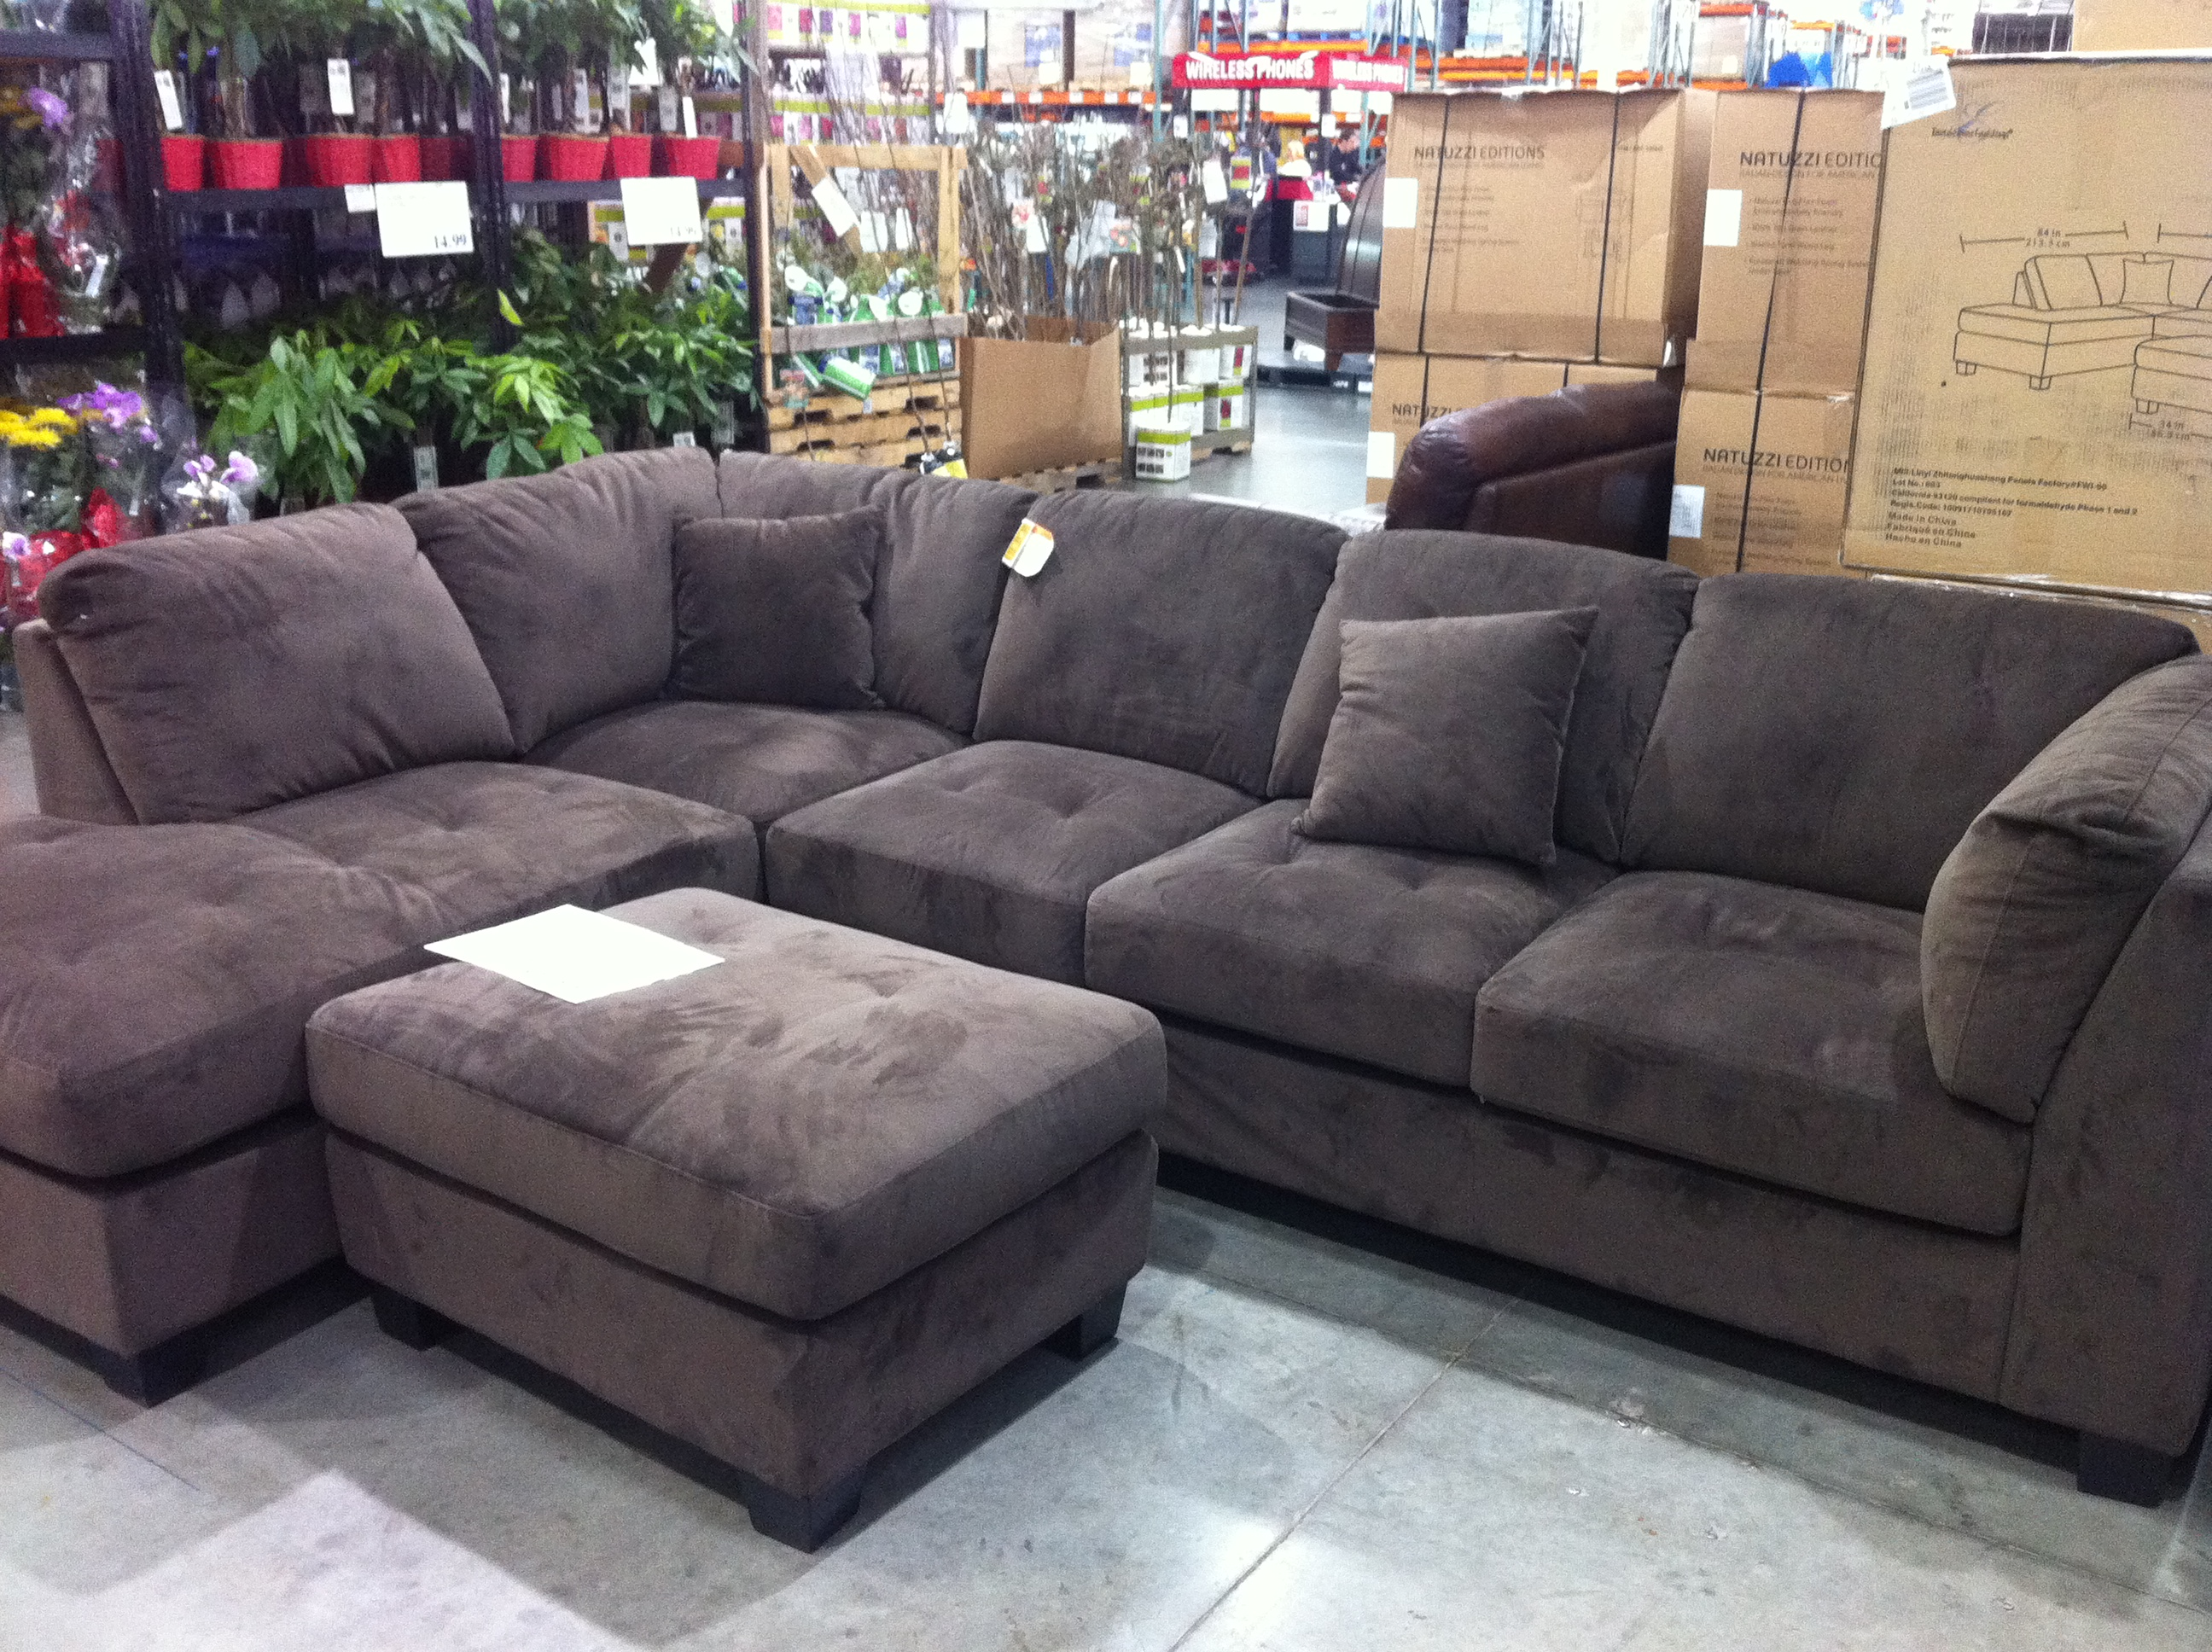 Costco Loveseat Shopping All You Need Is Love Home Ideas